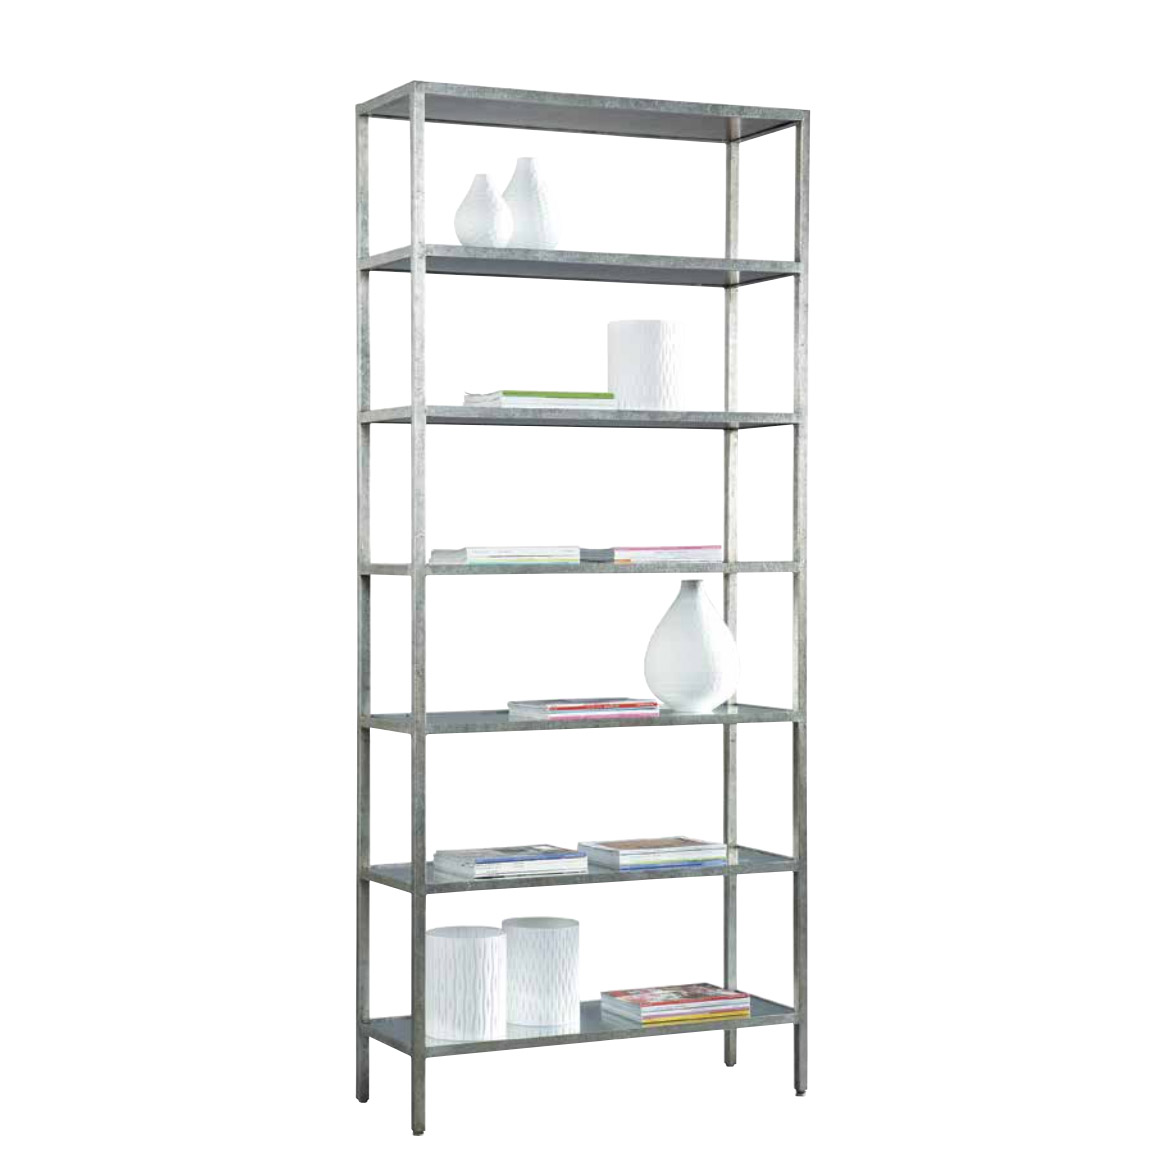 _Pickford Tower Bookcase - Silver.jpg